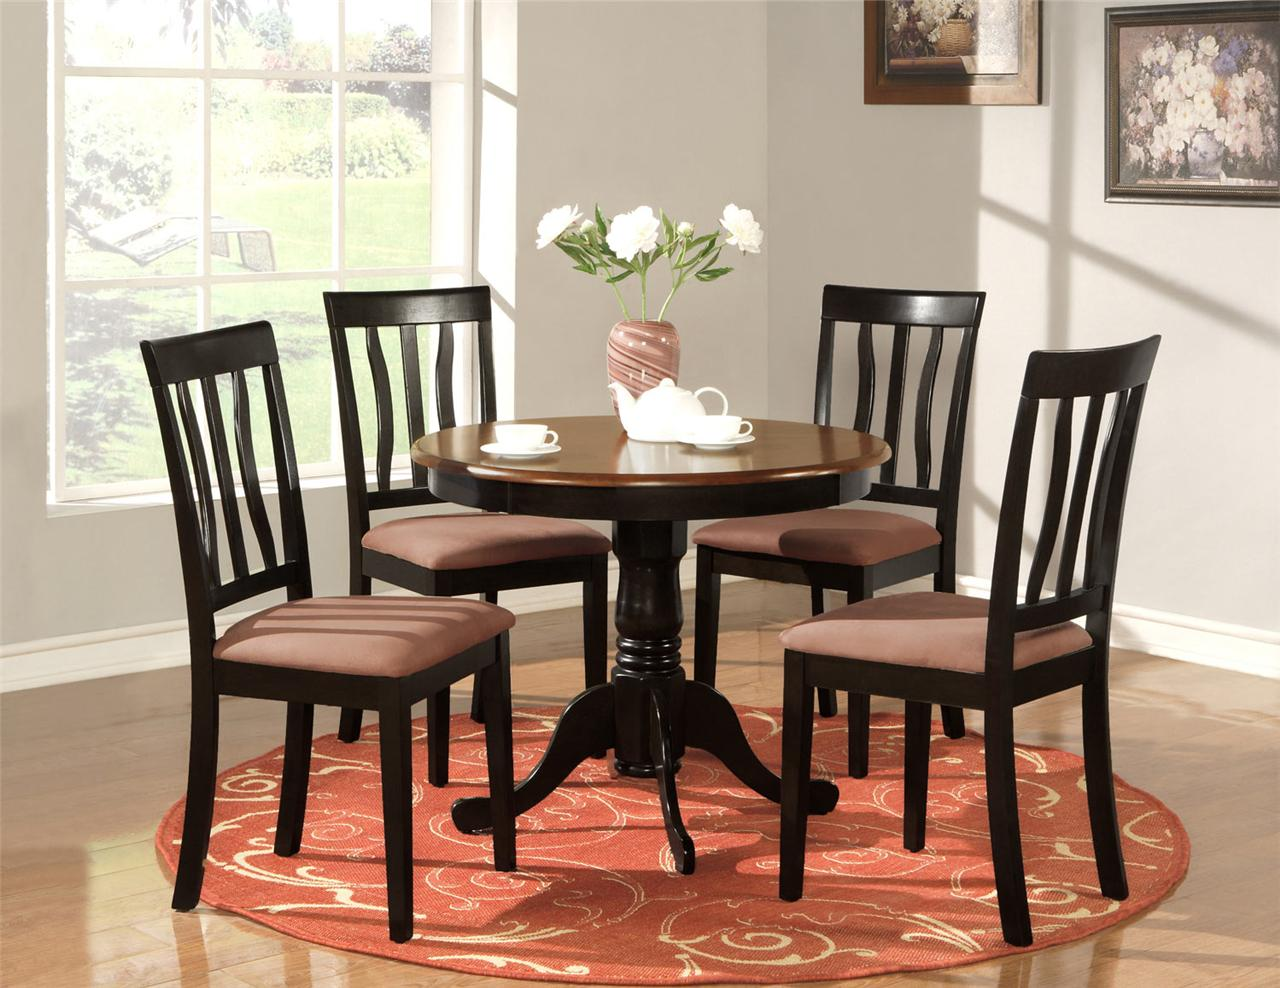 5 pc round table dinette kitchen table 4 chairs oak ebay for 4 chair kitchen table set